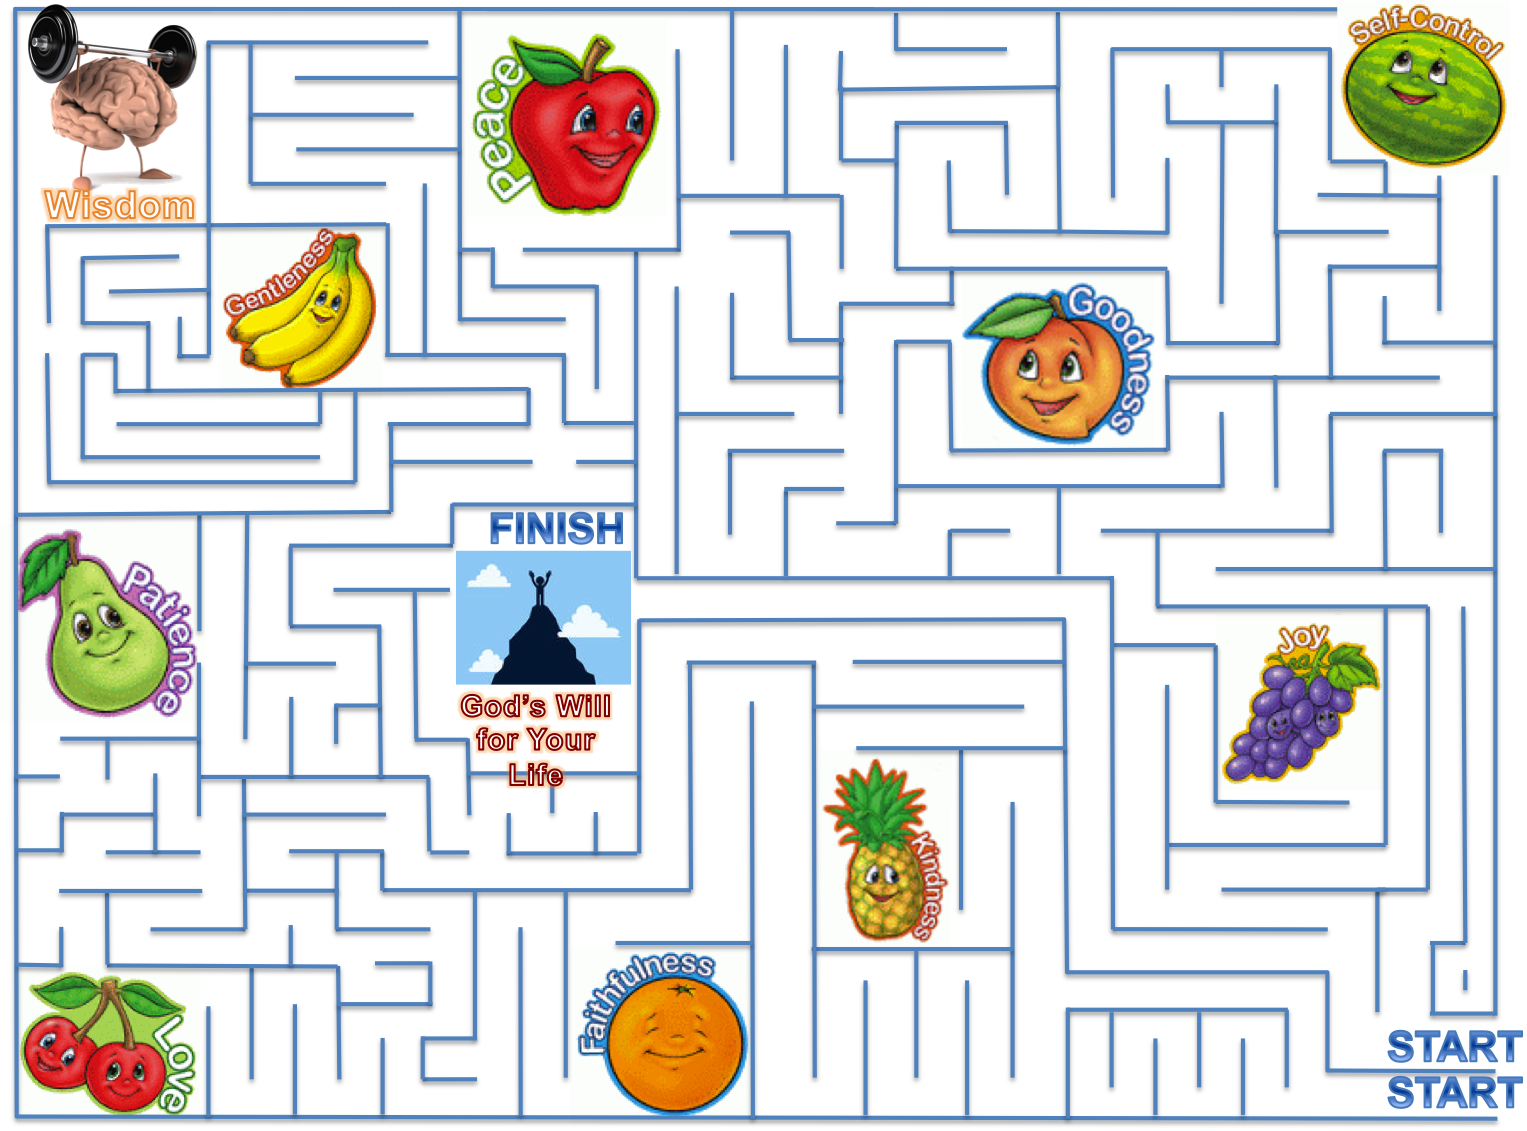 image free download Patience teach them. Maze clipart activity sheet.